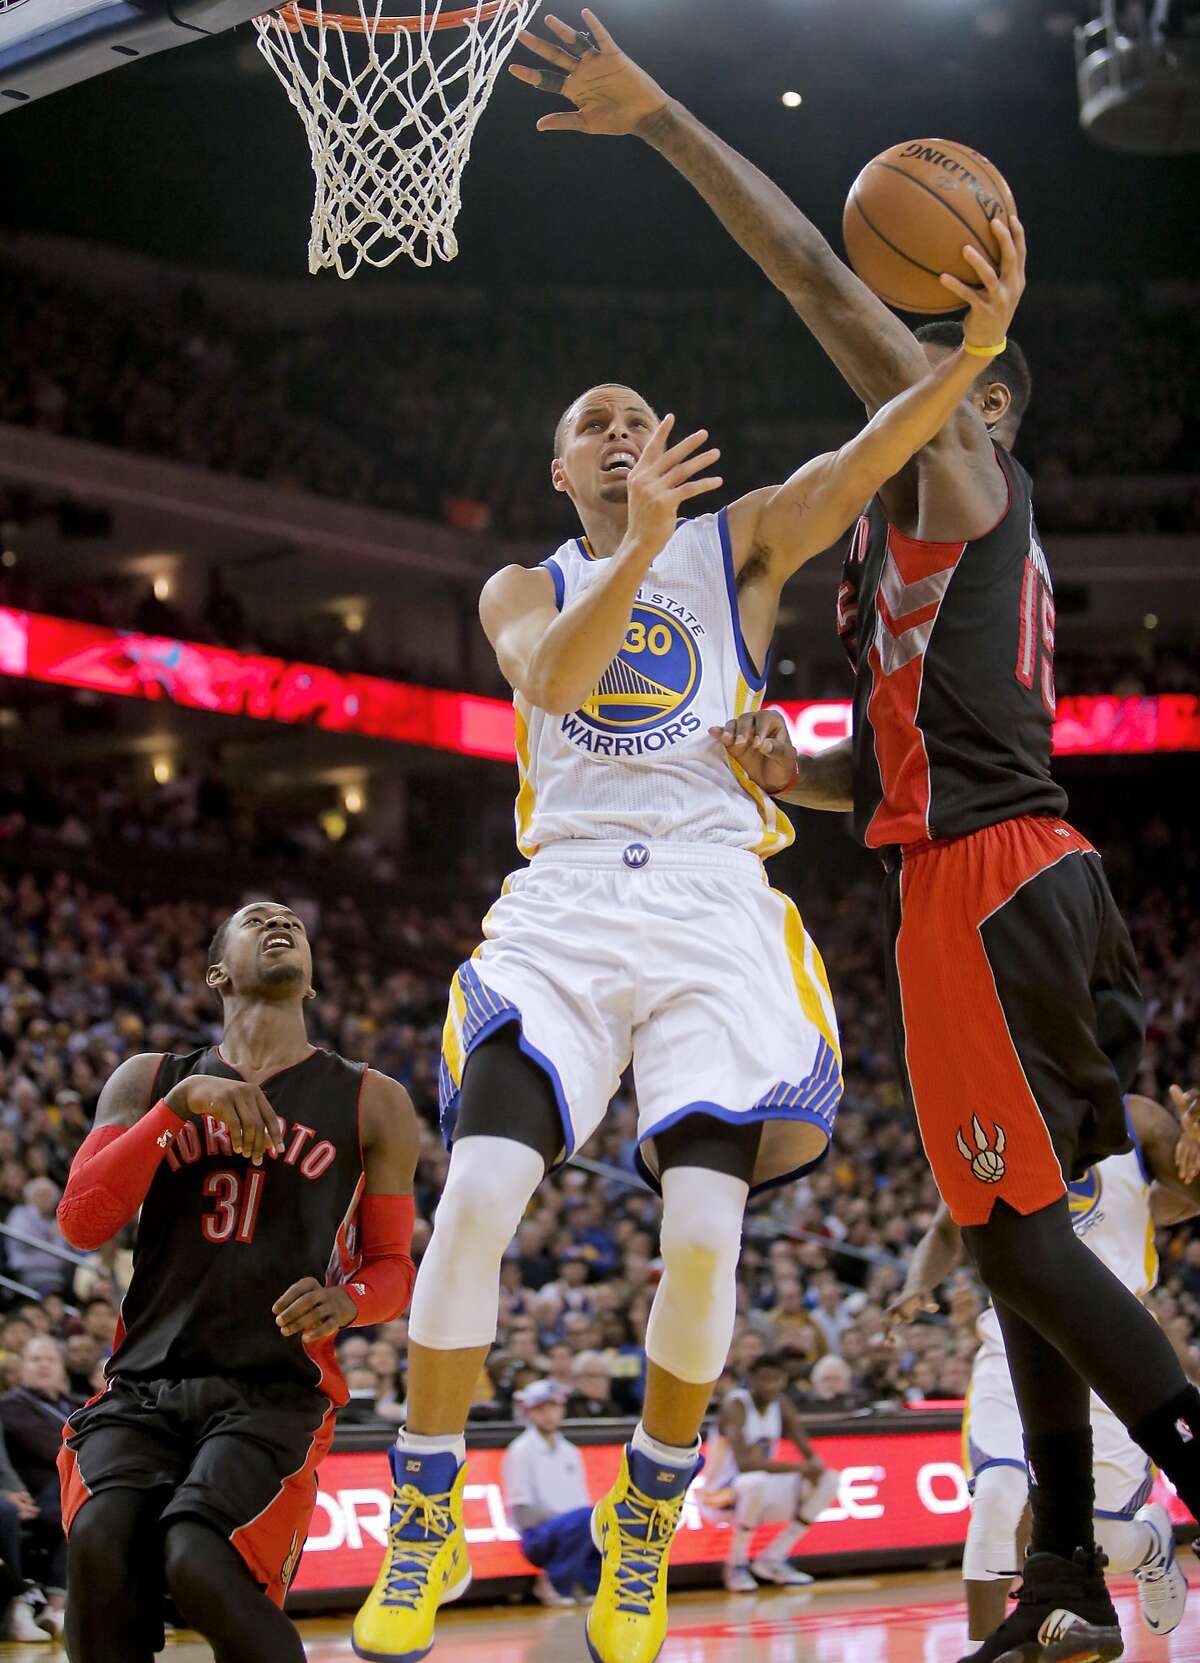 Warriors' Stephen Curry, 30 drives past the Raptors' Amir Johnson, 15 during the first half, as the Golden State Warriors take on the Toronto Raptors in NBA action at Oracle Arena in Oakland, Calif., on Friday Jan. 2, 2015.